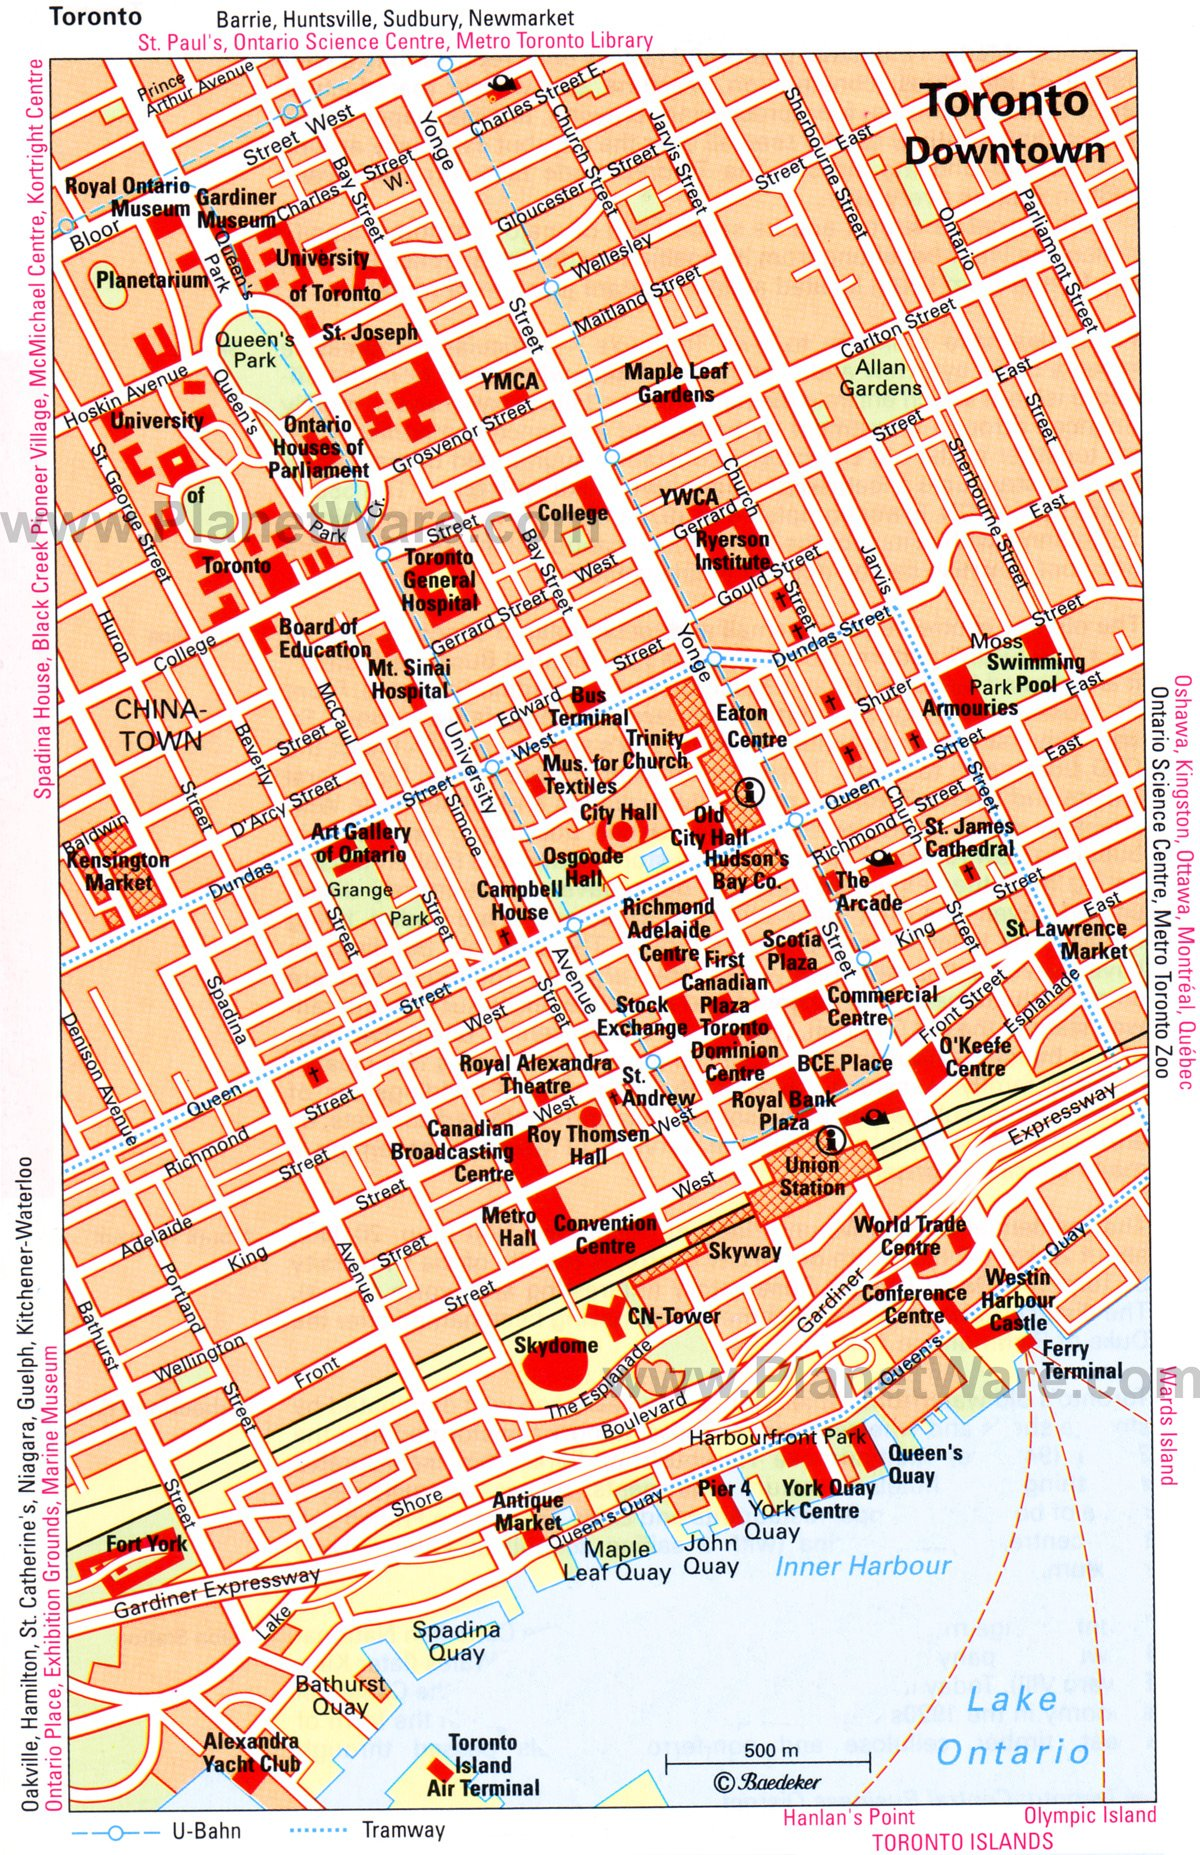 Toronto Downtown Map Tourist Attractions